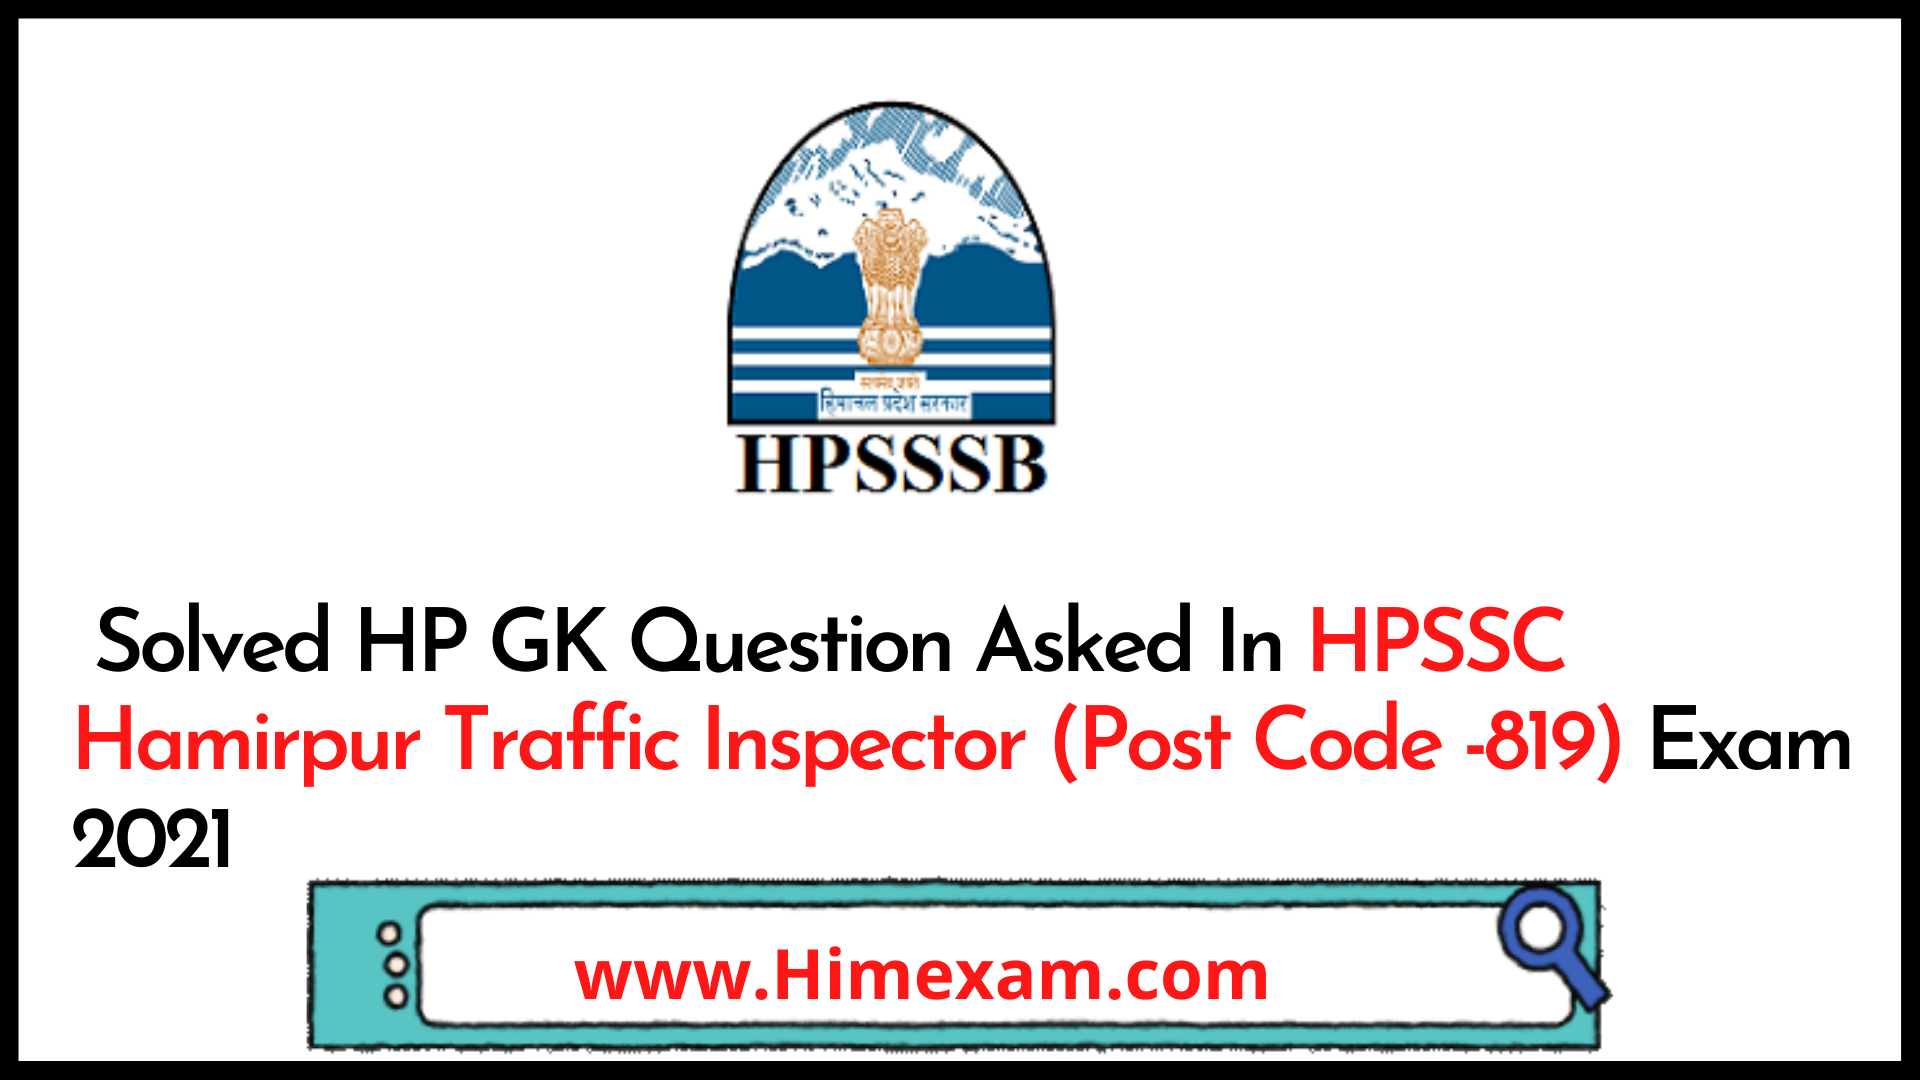 Solved HP GK Question Asked In HPSSC Hamirpur Traffic Inspector (Post Code -819) Exam 2021